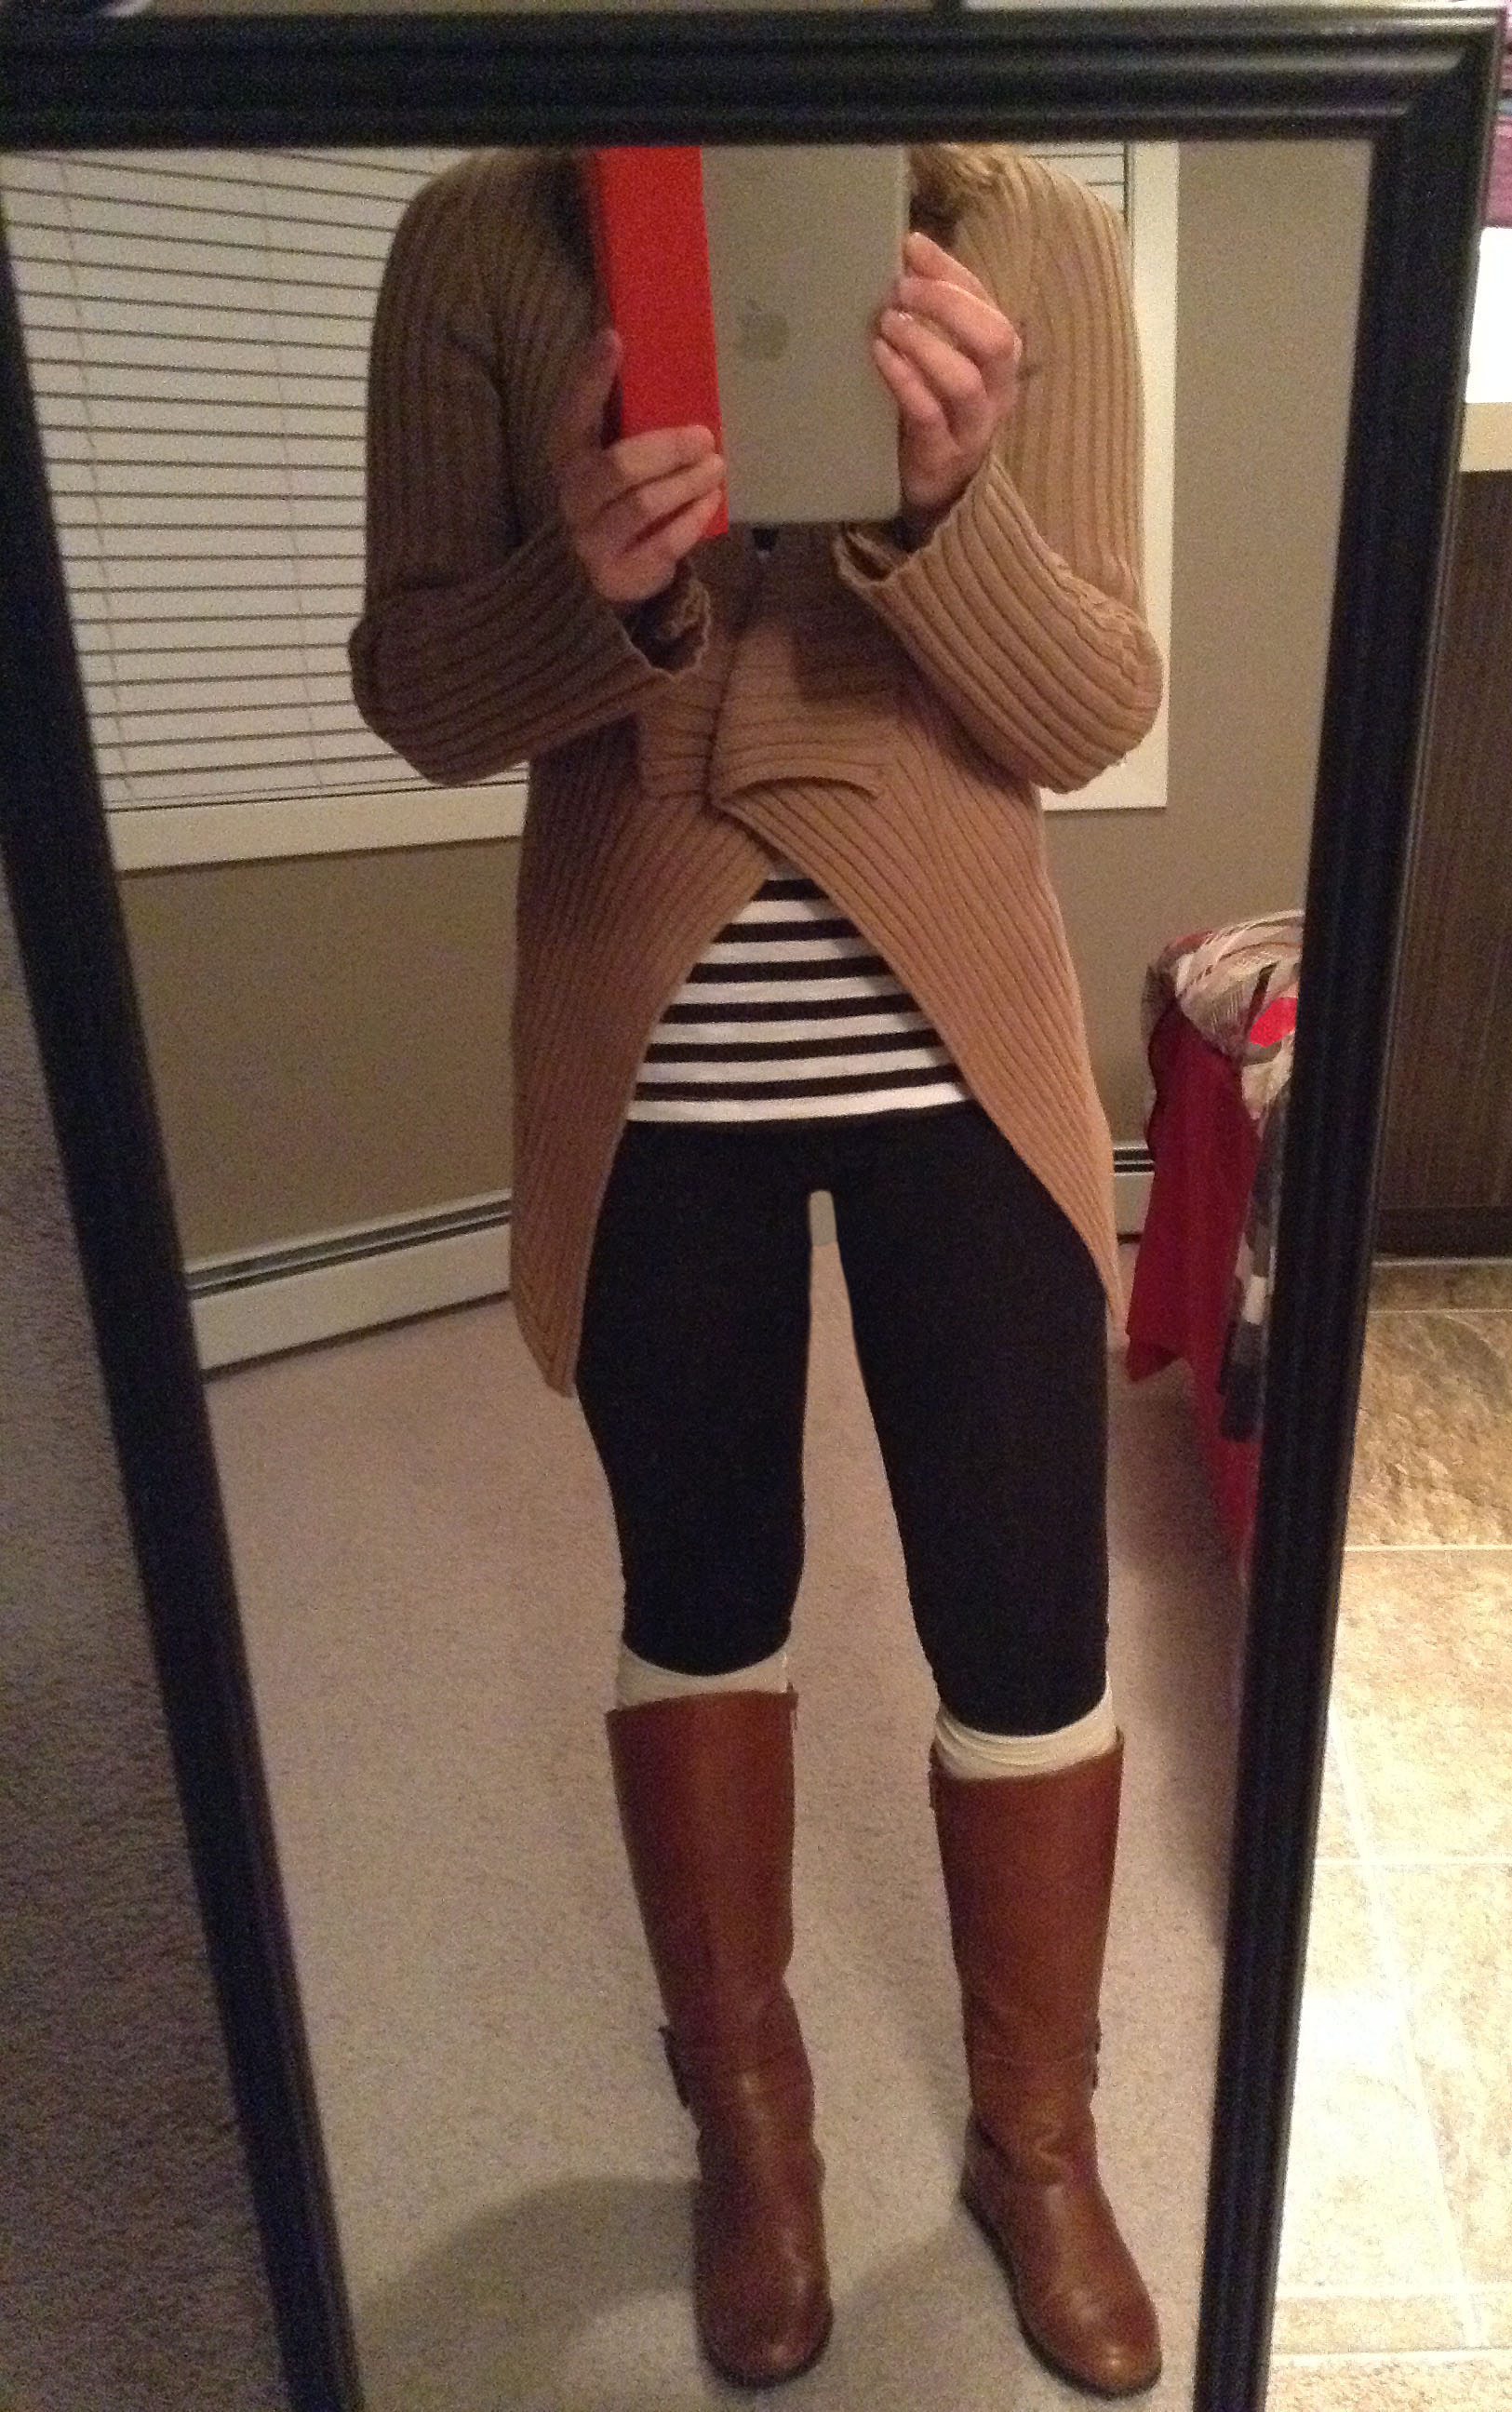 Joining the Leggings Fashion Trend – Rural Route Ramblings